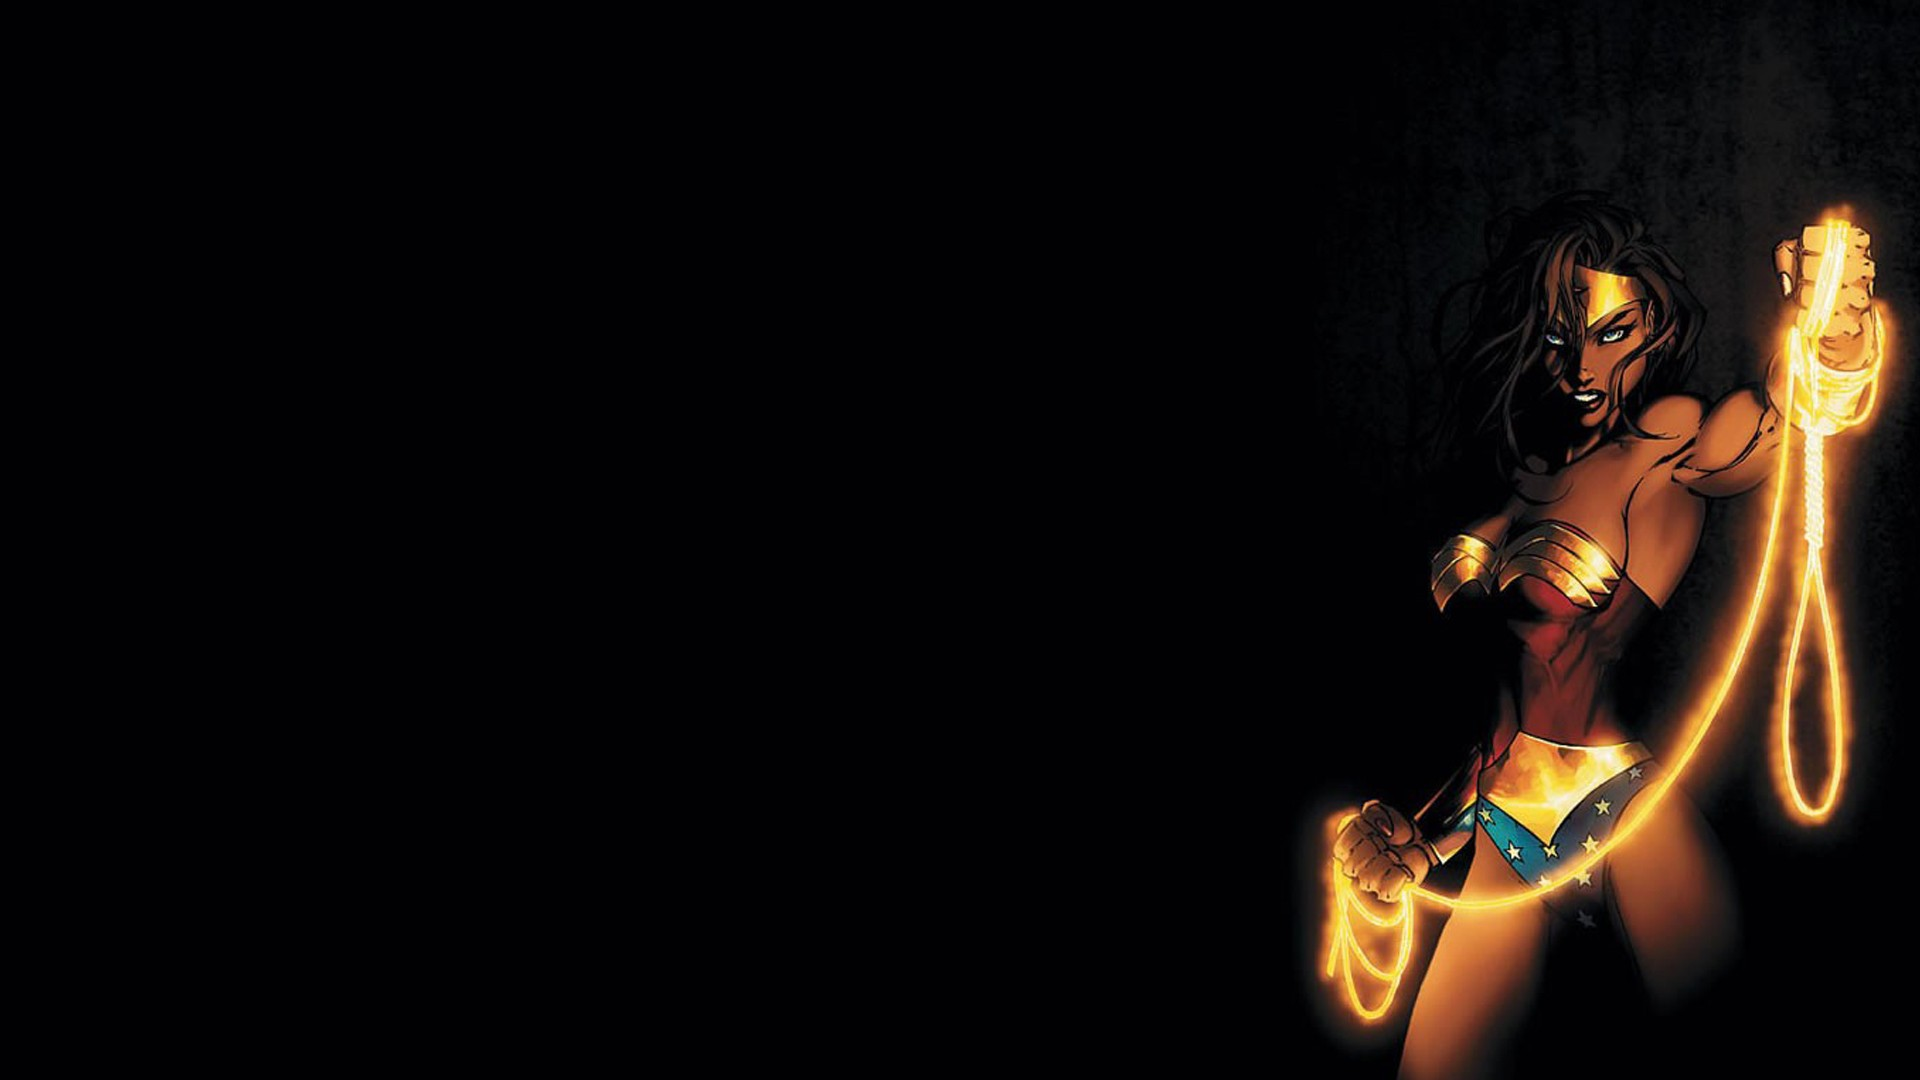 Wonder Woman Hd Wallpaper: Wonder Woman HD Wallpapers